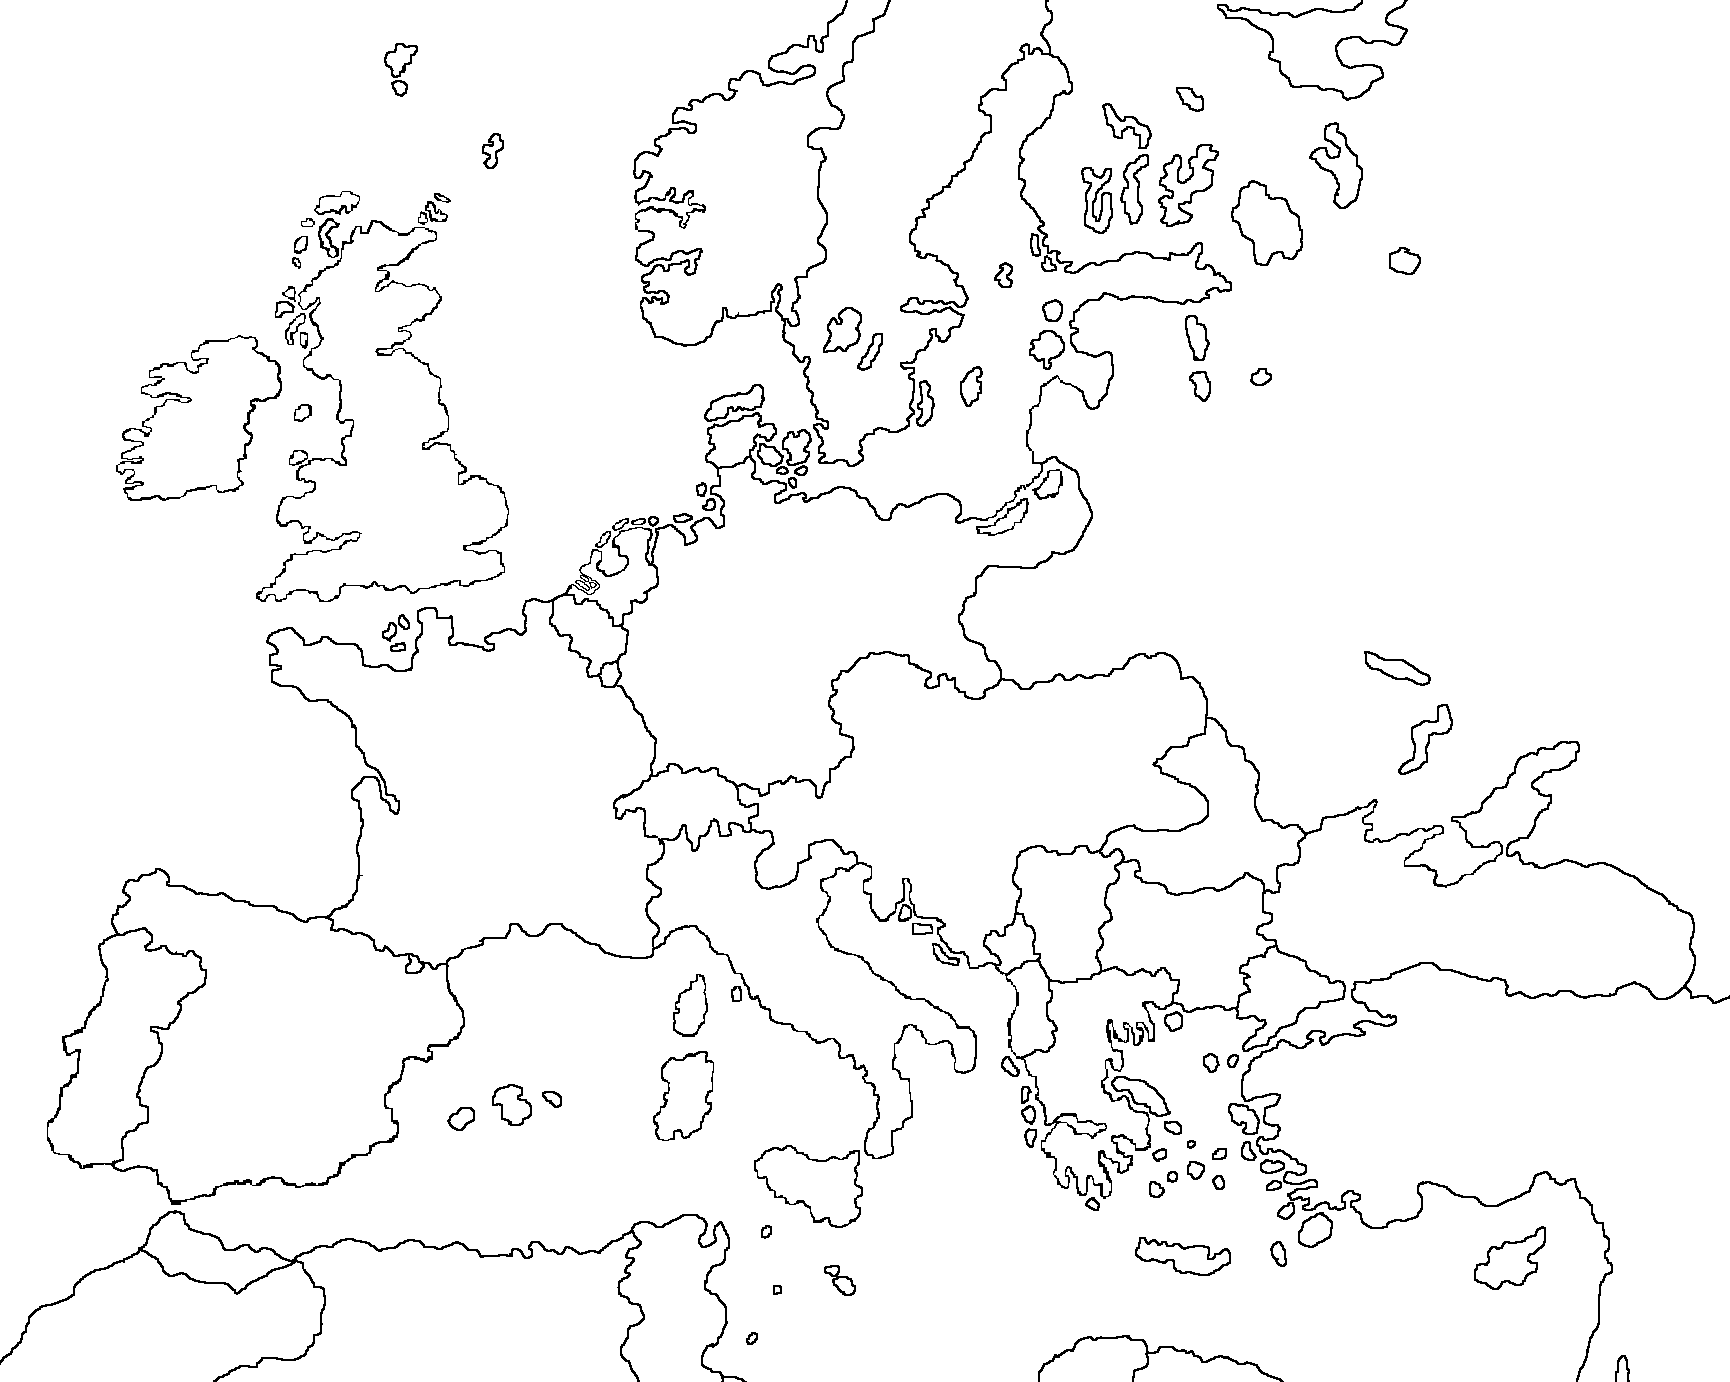 Image  Blank map of Europe 1914 by Eric4epng